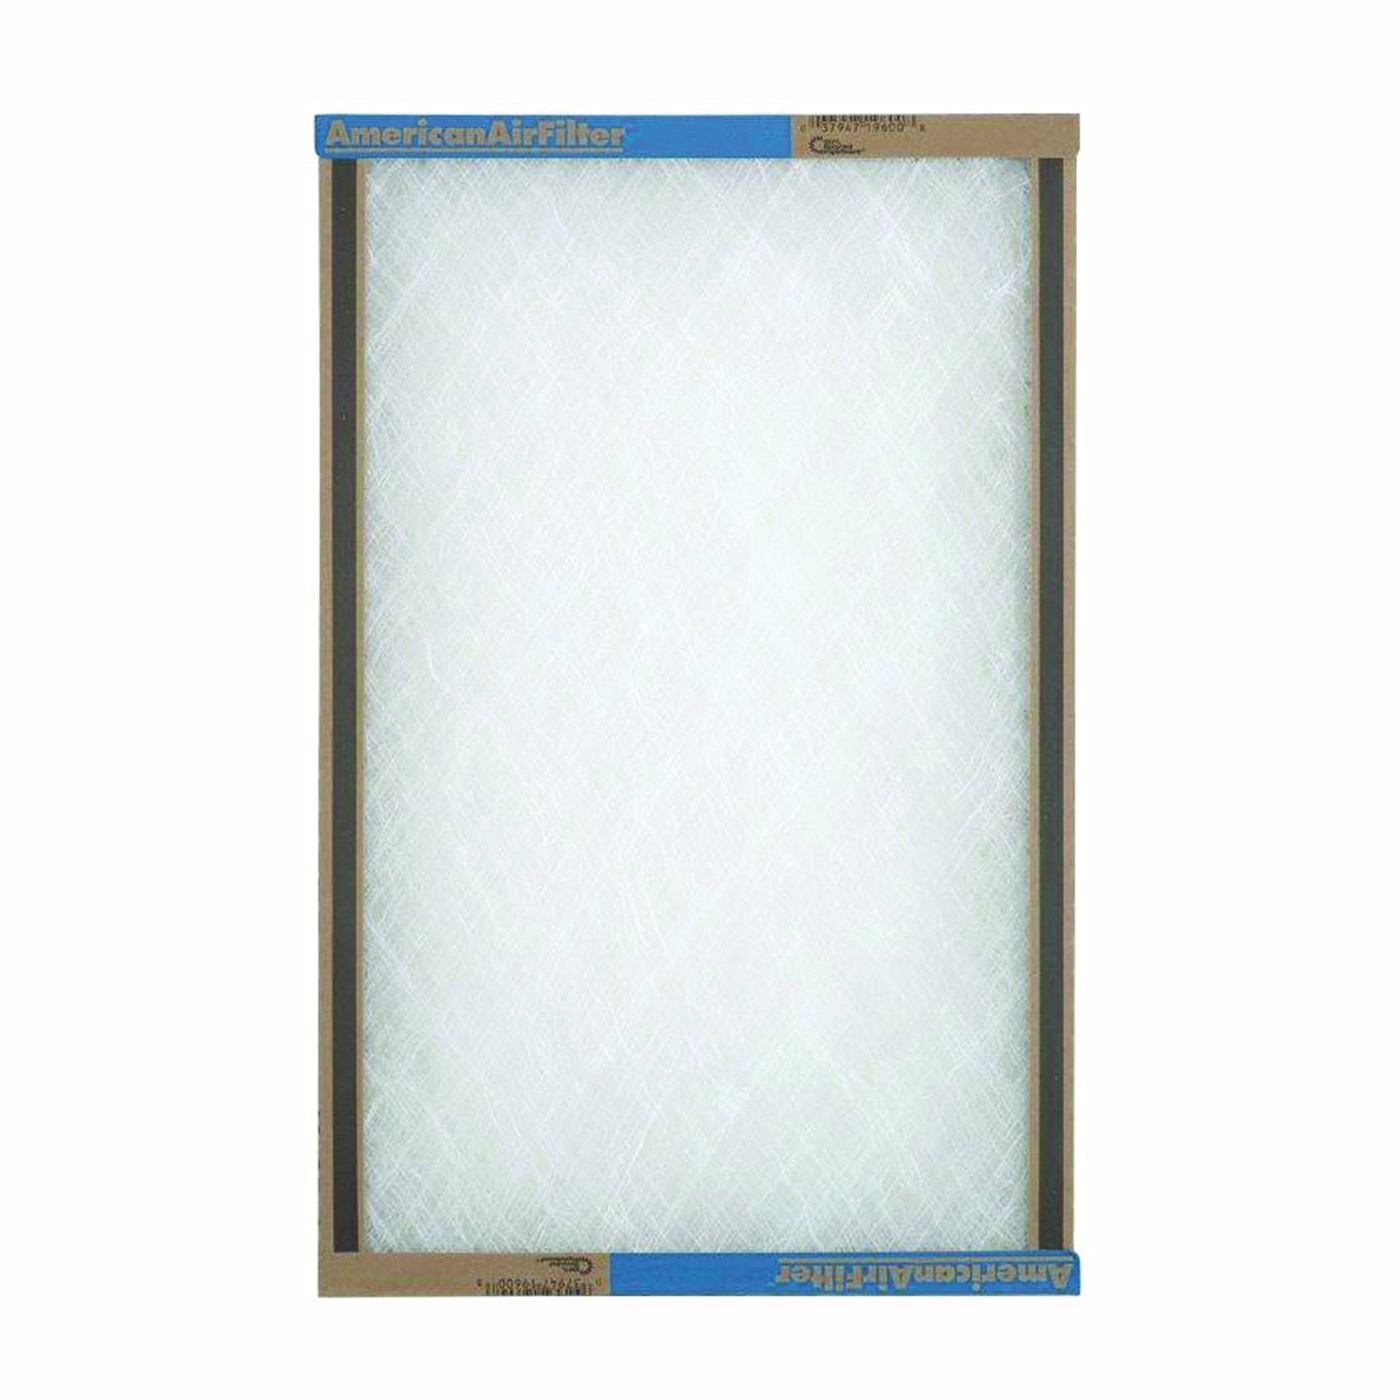 Picture of AAF 125251 Panel Filter, 25 in L, 25 in W, Chipboard Frame